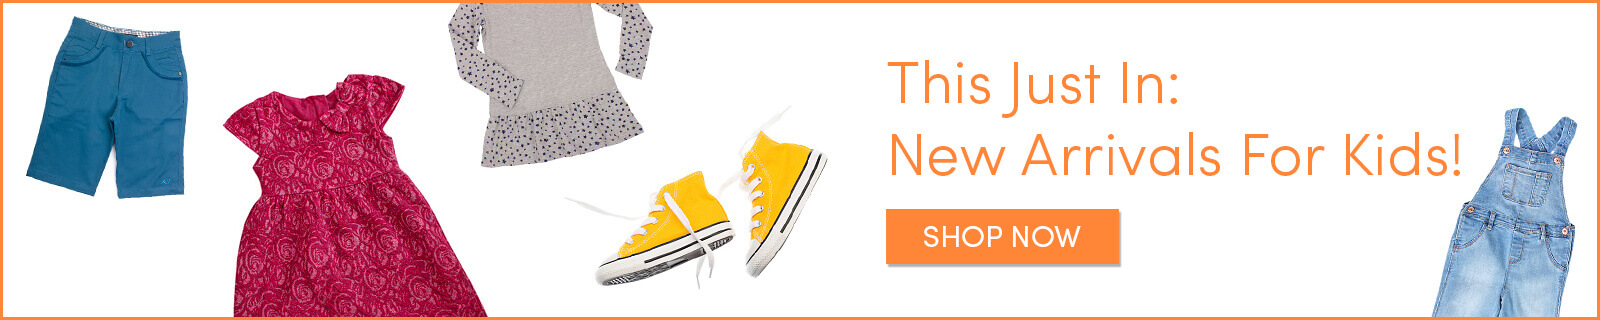 Shop New Arrivals in Cute Kids' Clothes